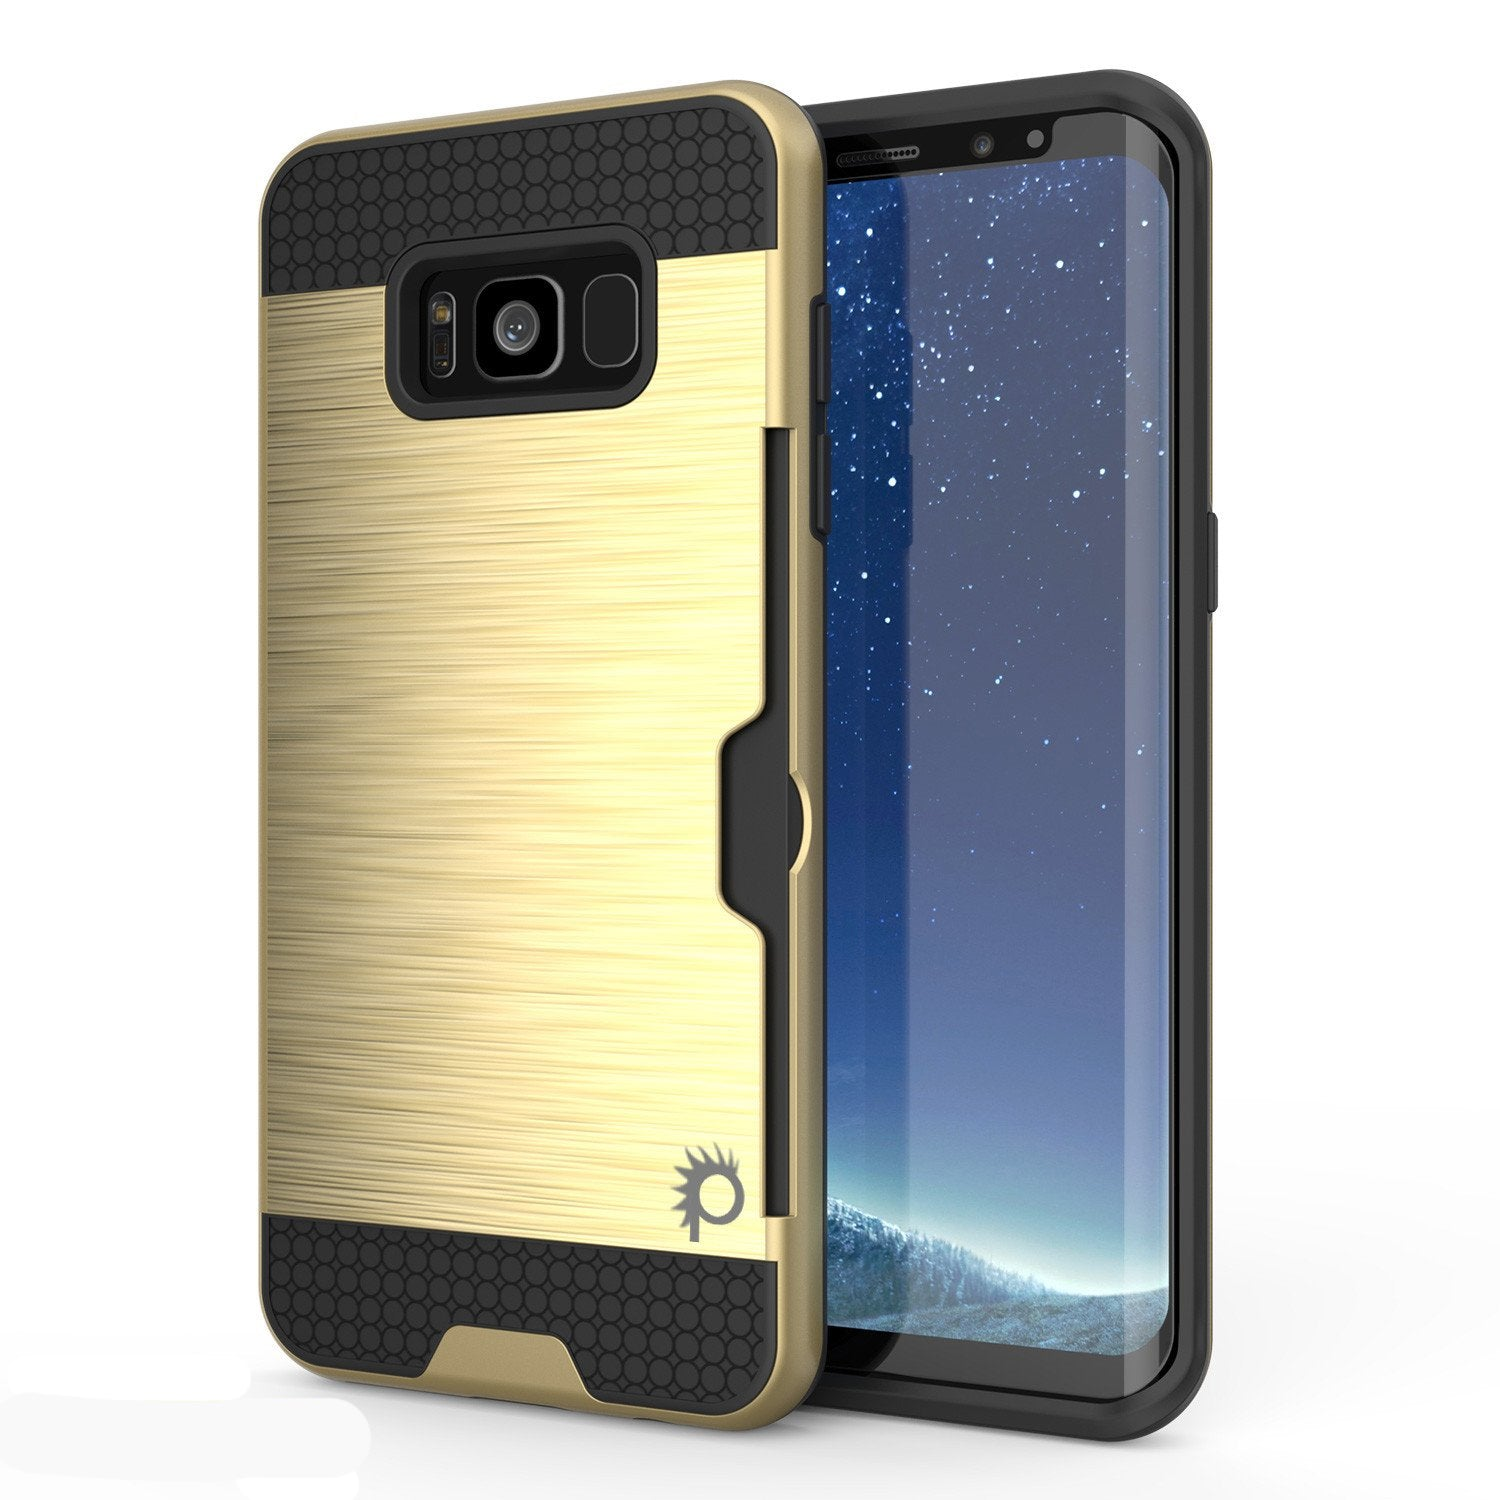 Galaxy S8 Case, PUNKcase [SLOT Series] [Slim Fit] [Gold]